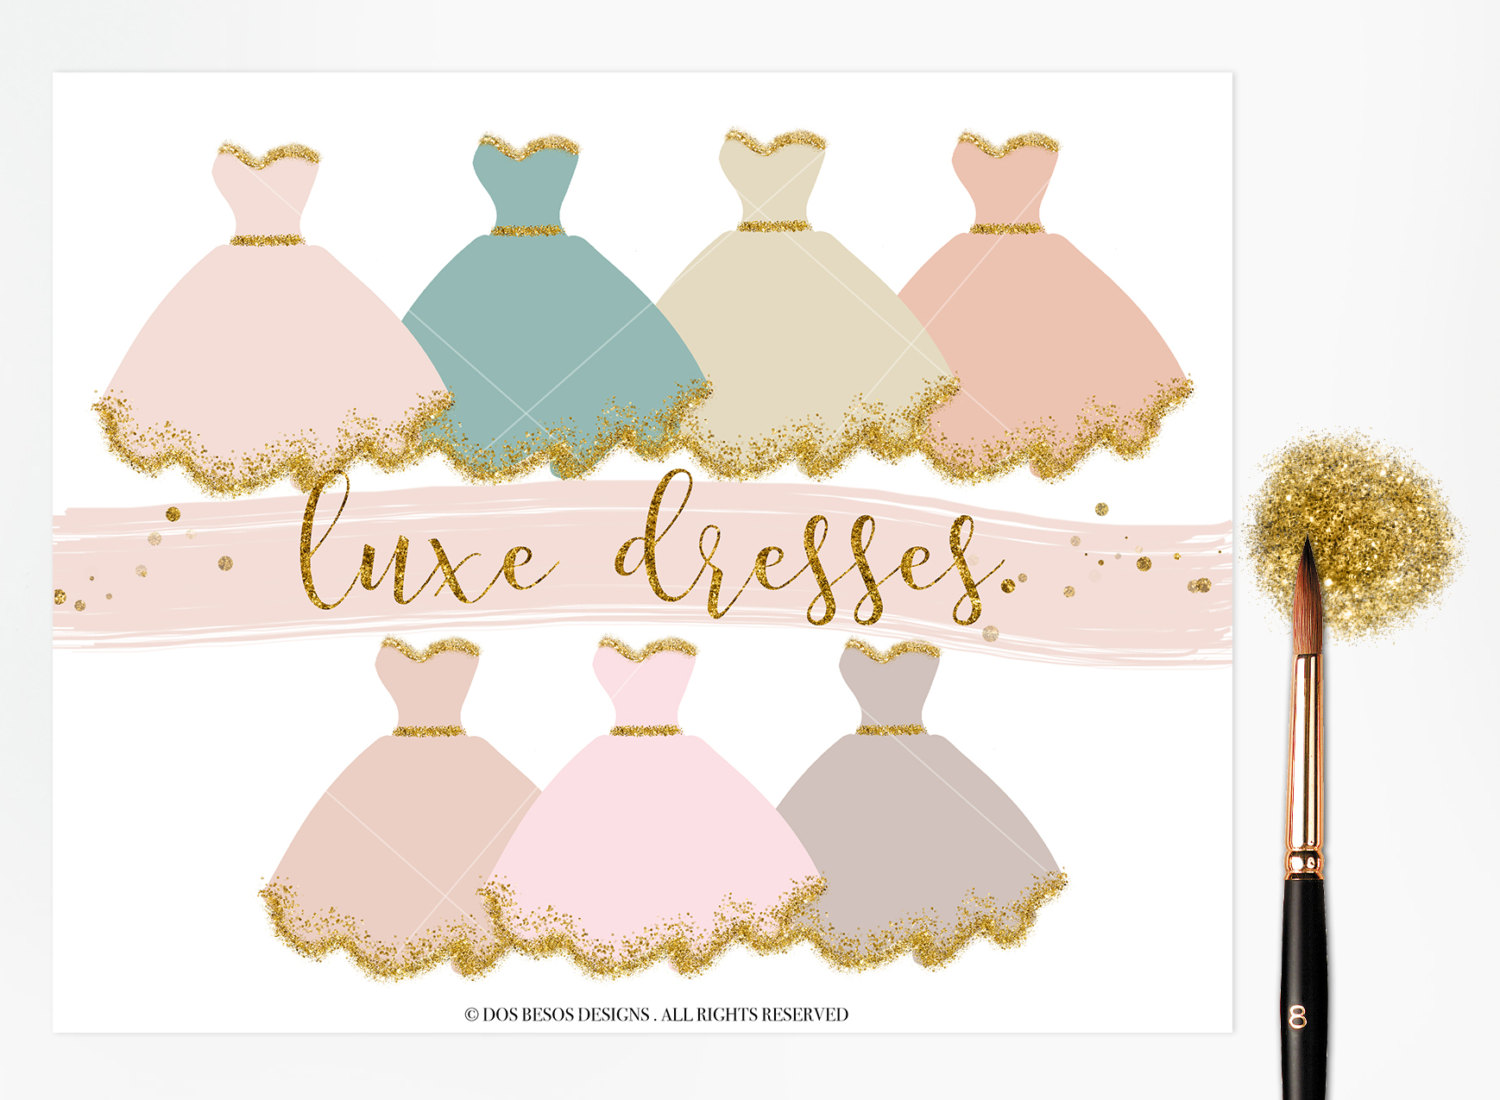 Gown clipart fashion dress Couture Etsy Glitter Dress Dress